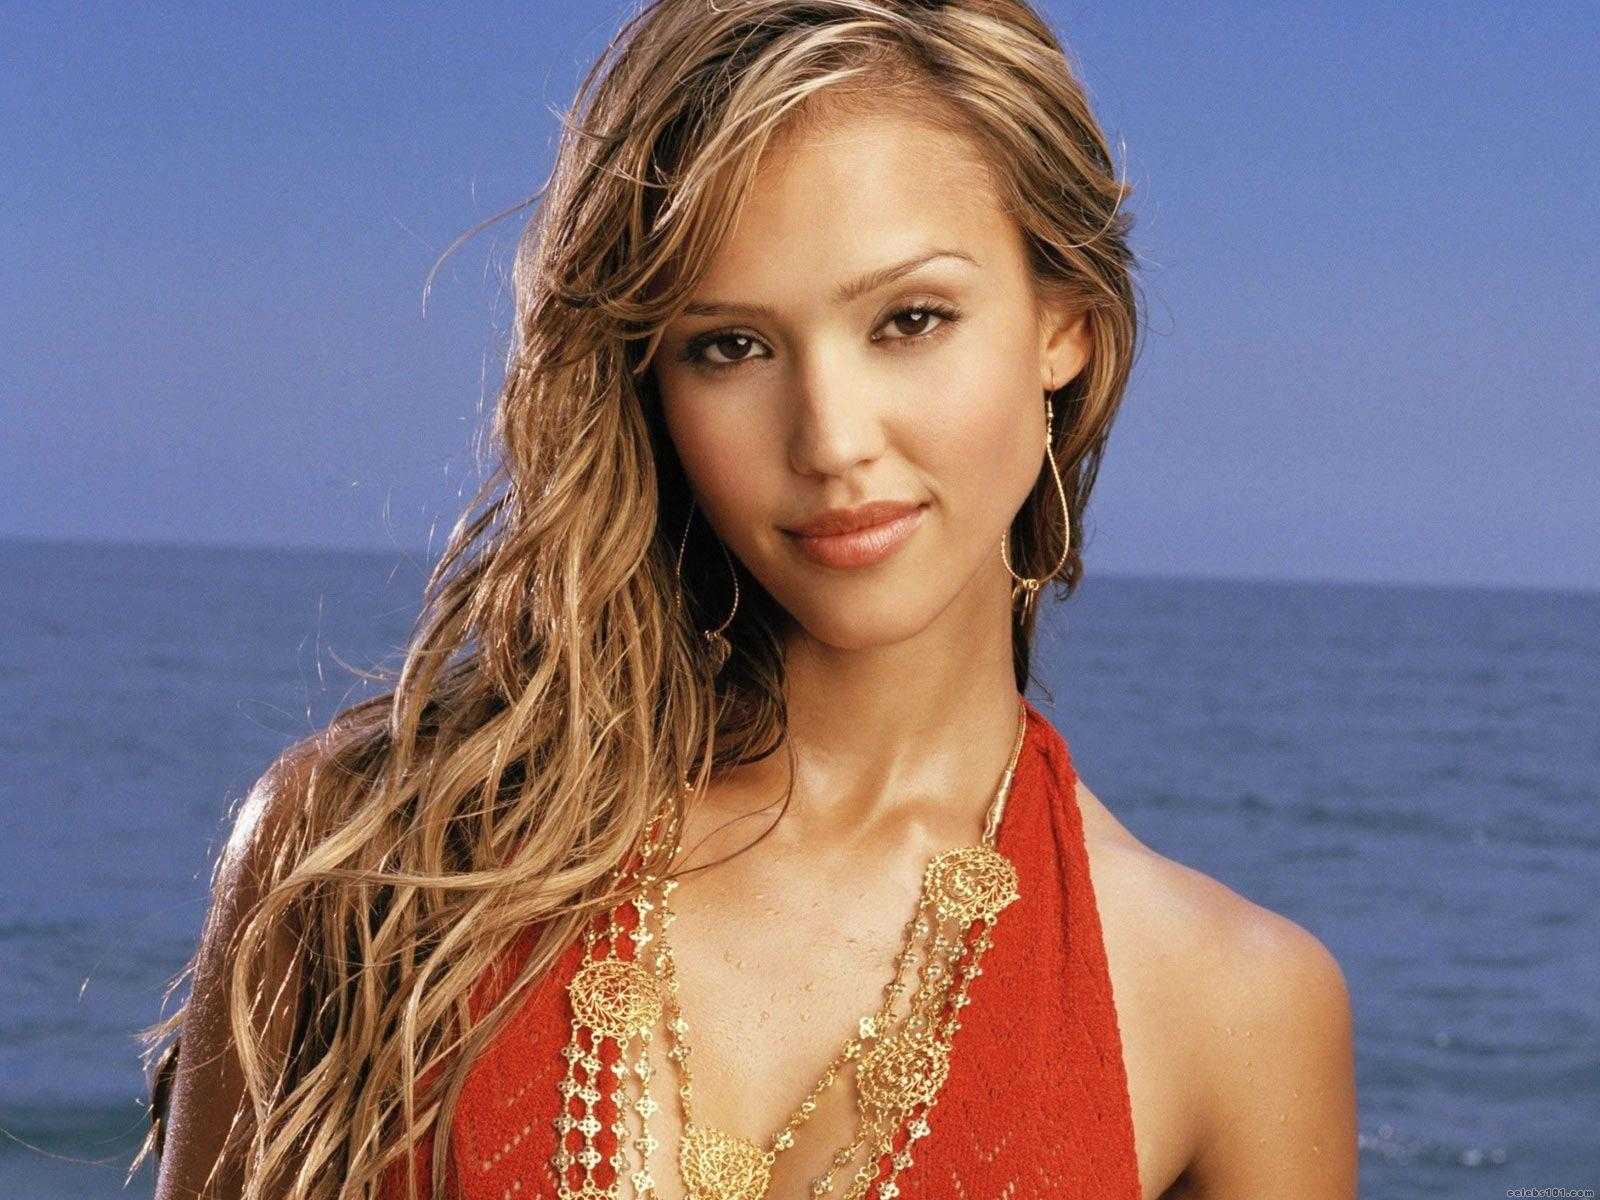 Jessica Alba - Height, Weight, Age, Movies & Family